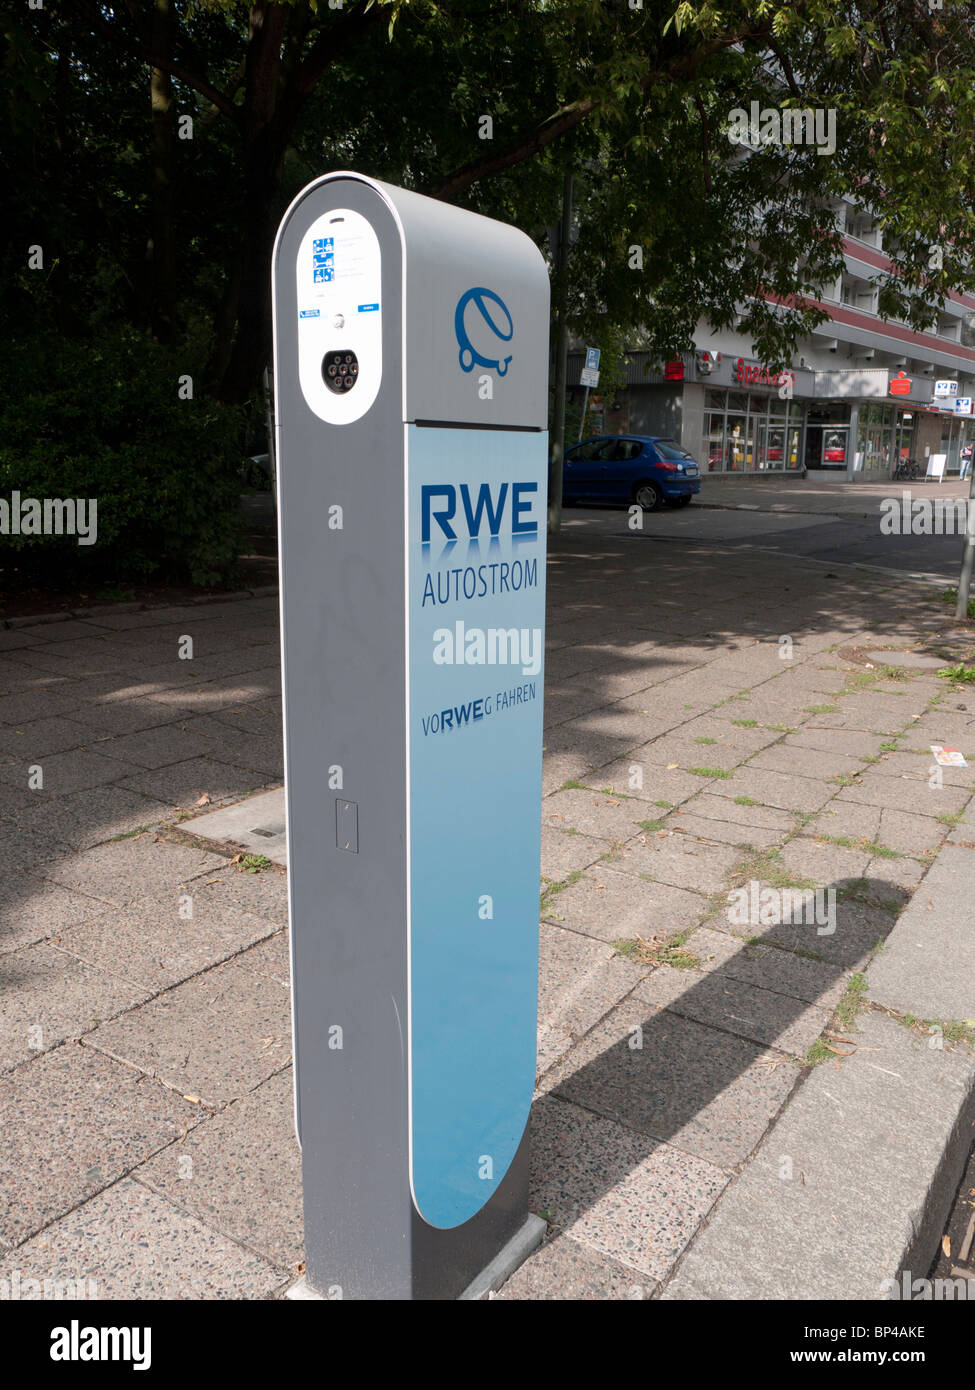 New electric car plug-in recharging station operated by RWE on Berlin street Germany - Stock Image